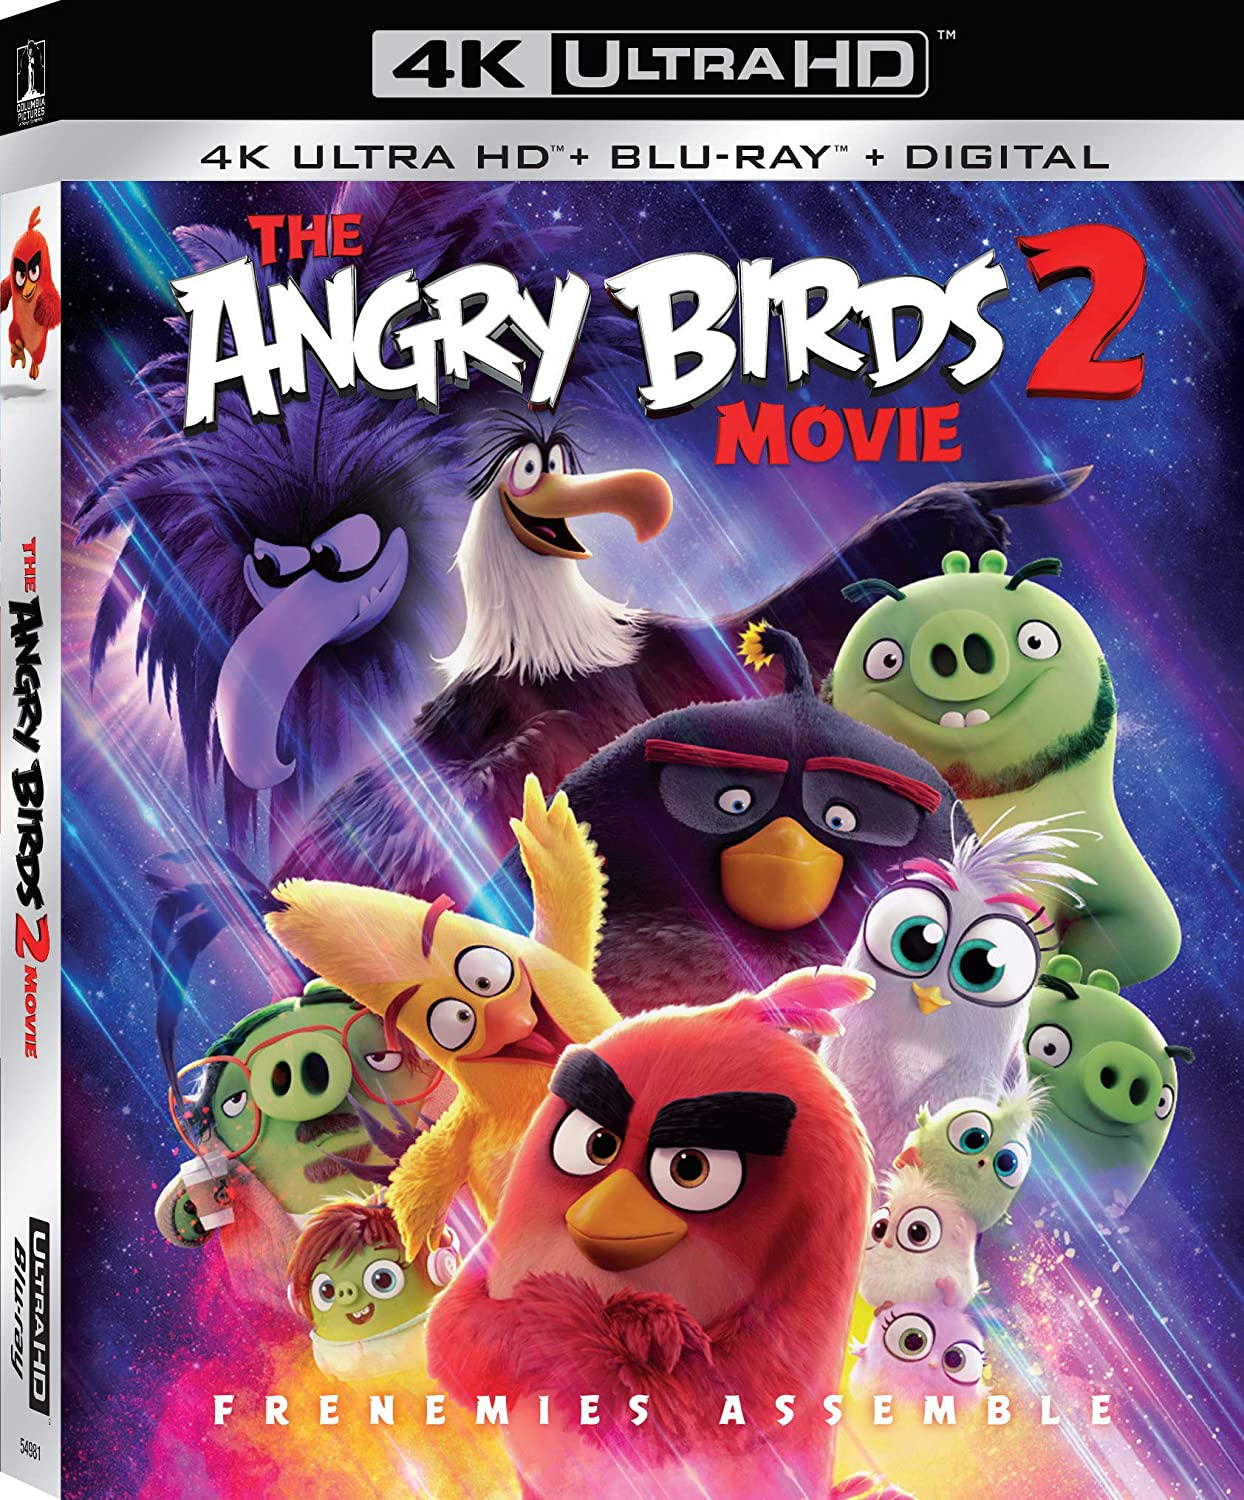 Amazon Com The Angry Birds Movie 2 Blu Ray Thurop Van Orman